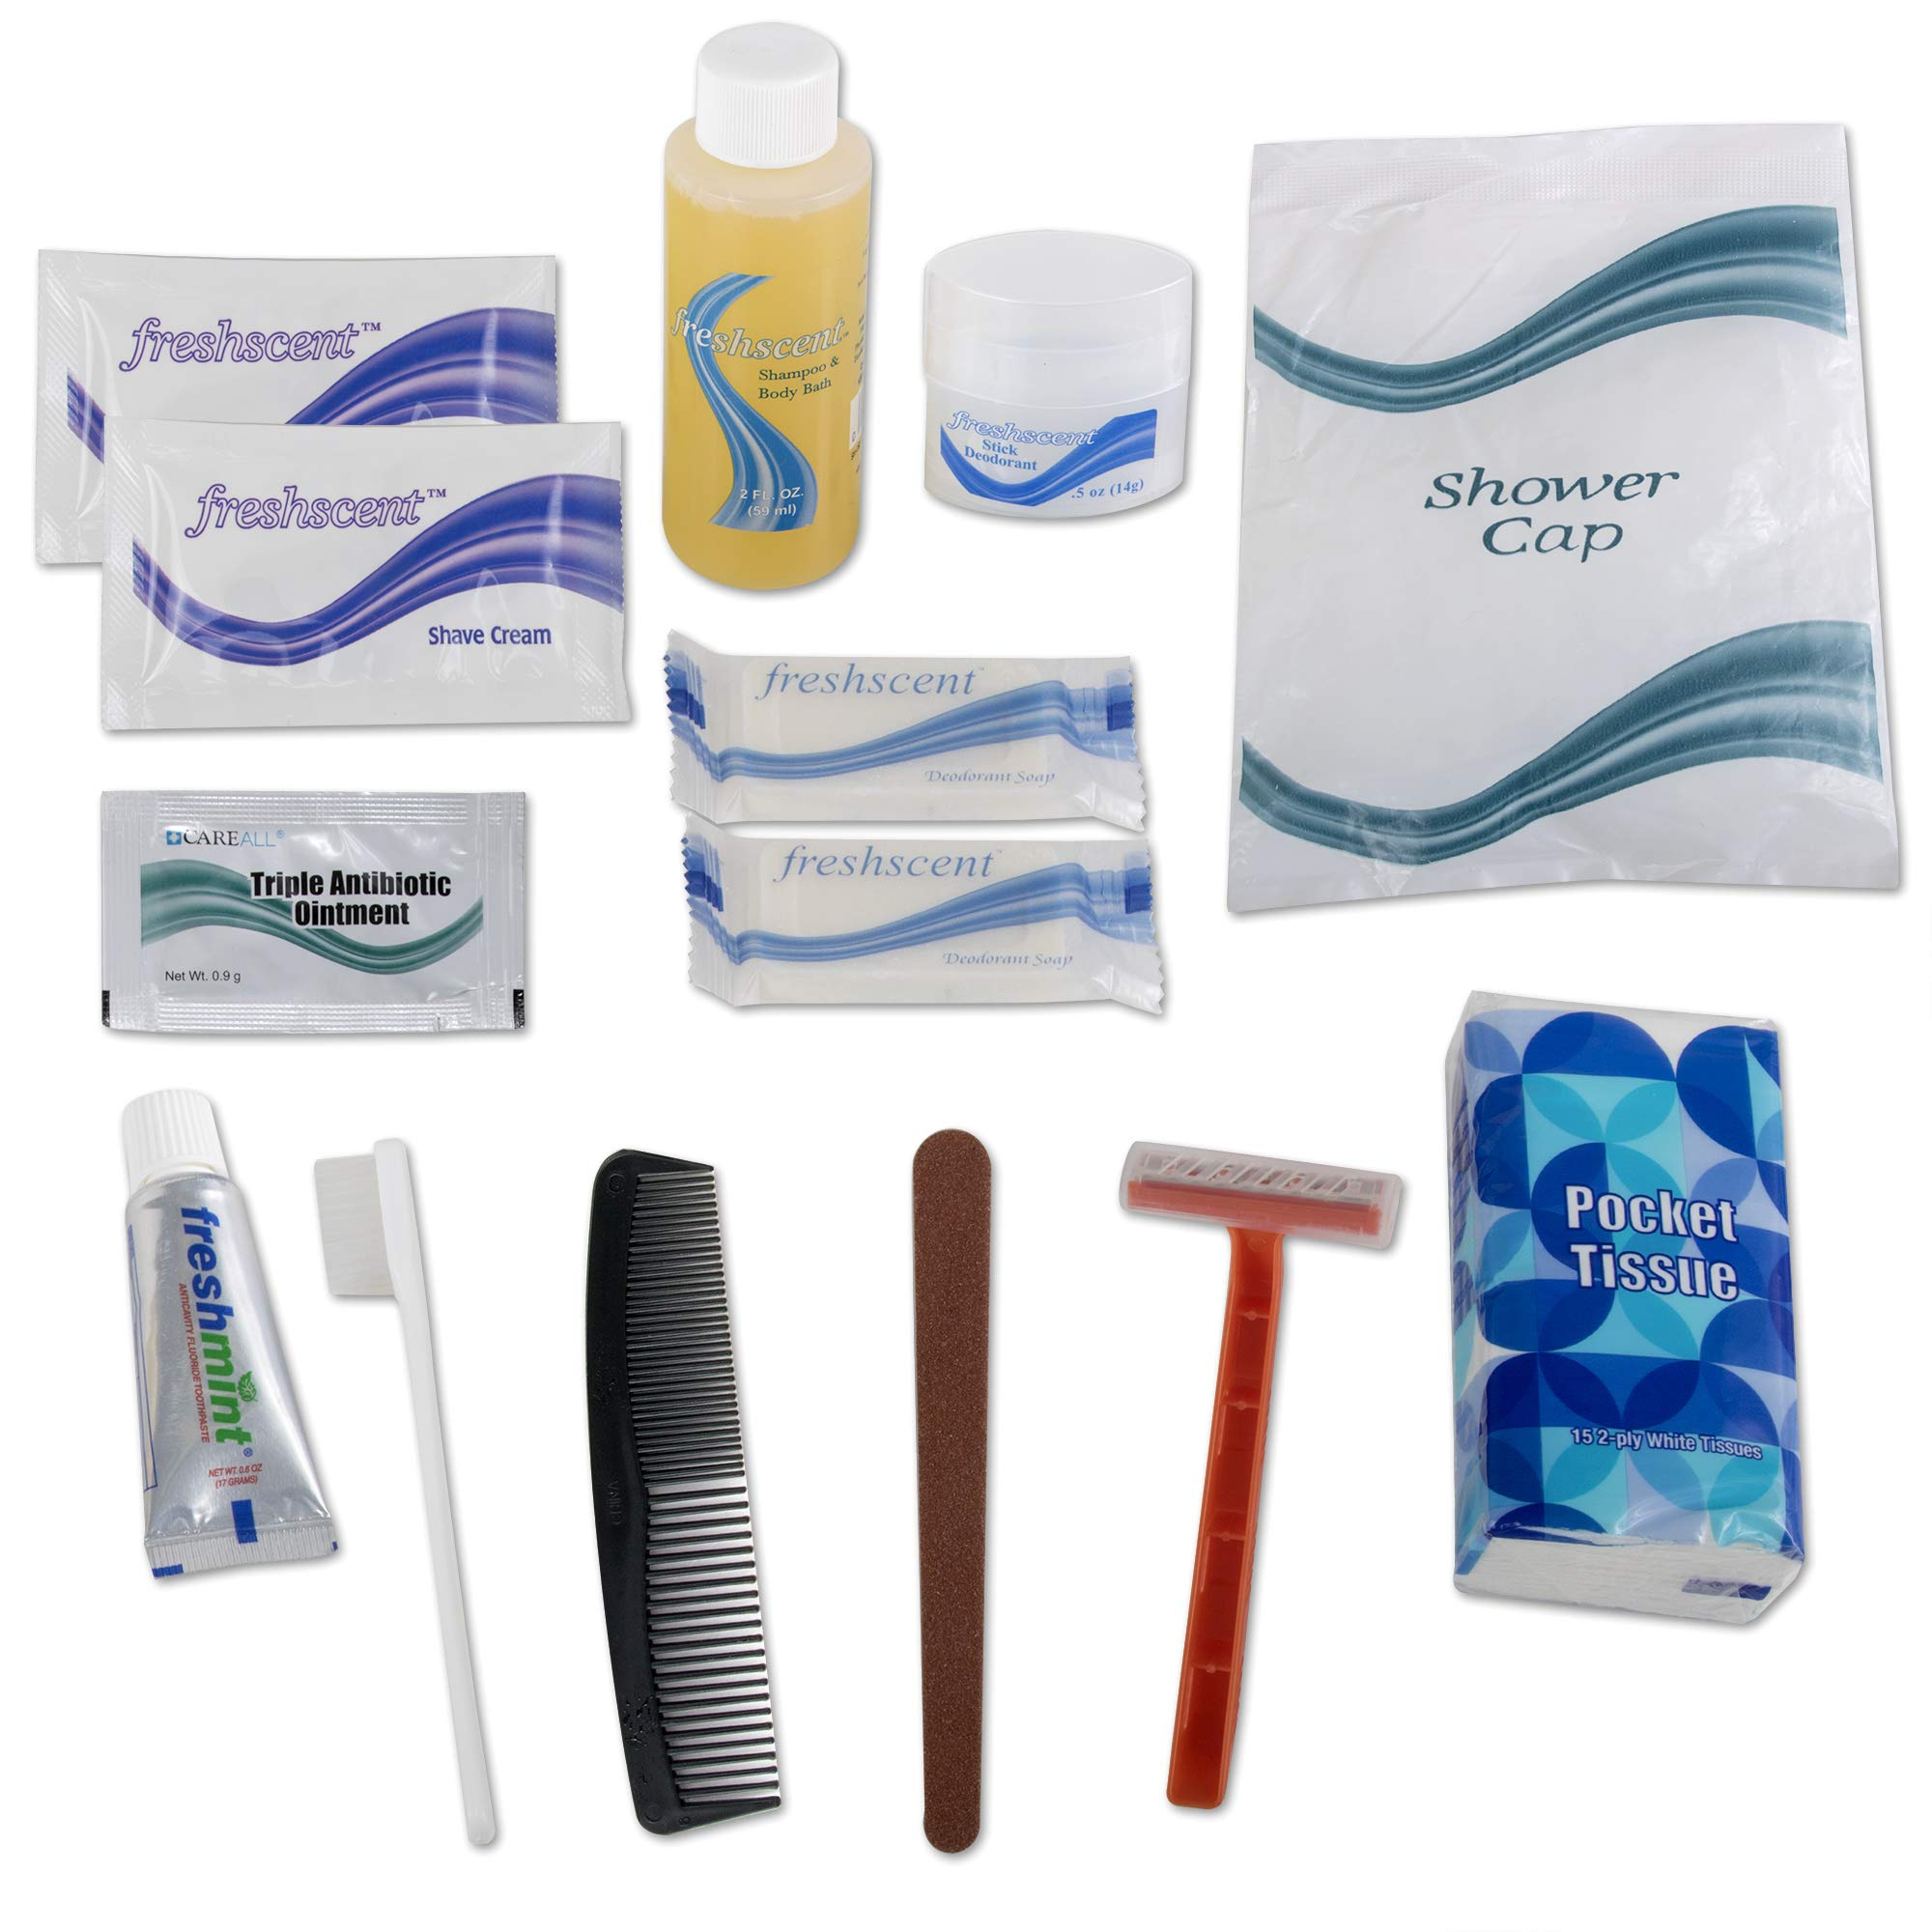 Wholesale Basic 15 Piece Hygiene Kit in Bulk, 48 Sets Per Case